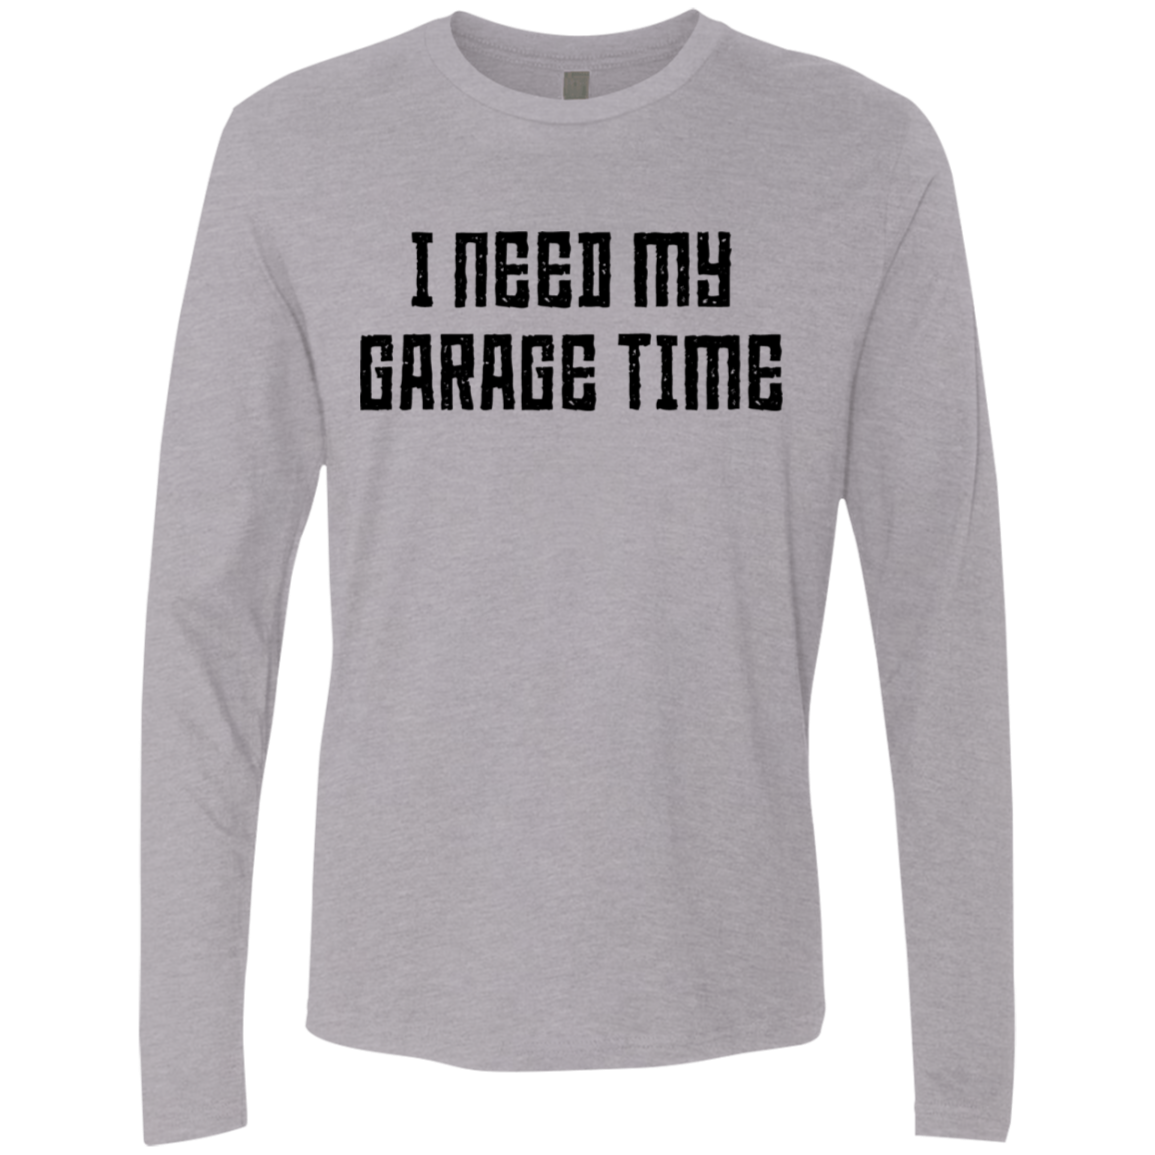 I Need My Garage Time Men's Long Sleeve Tee